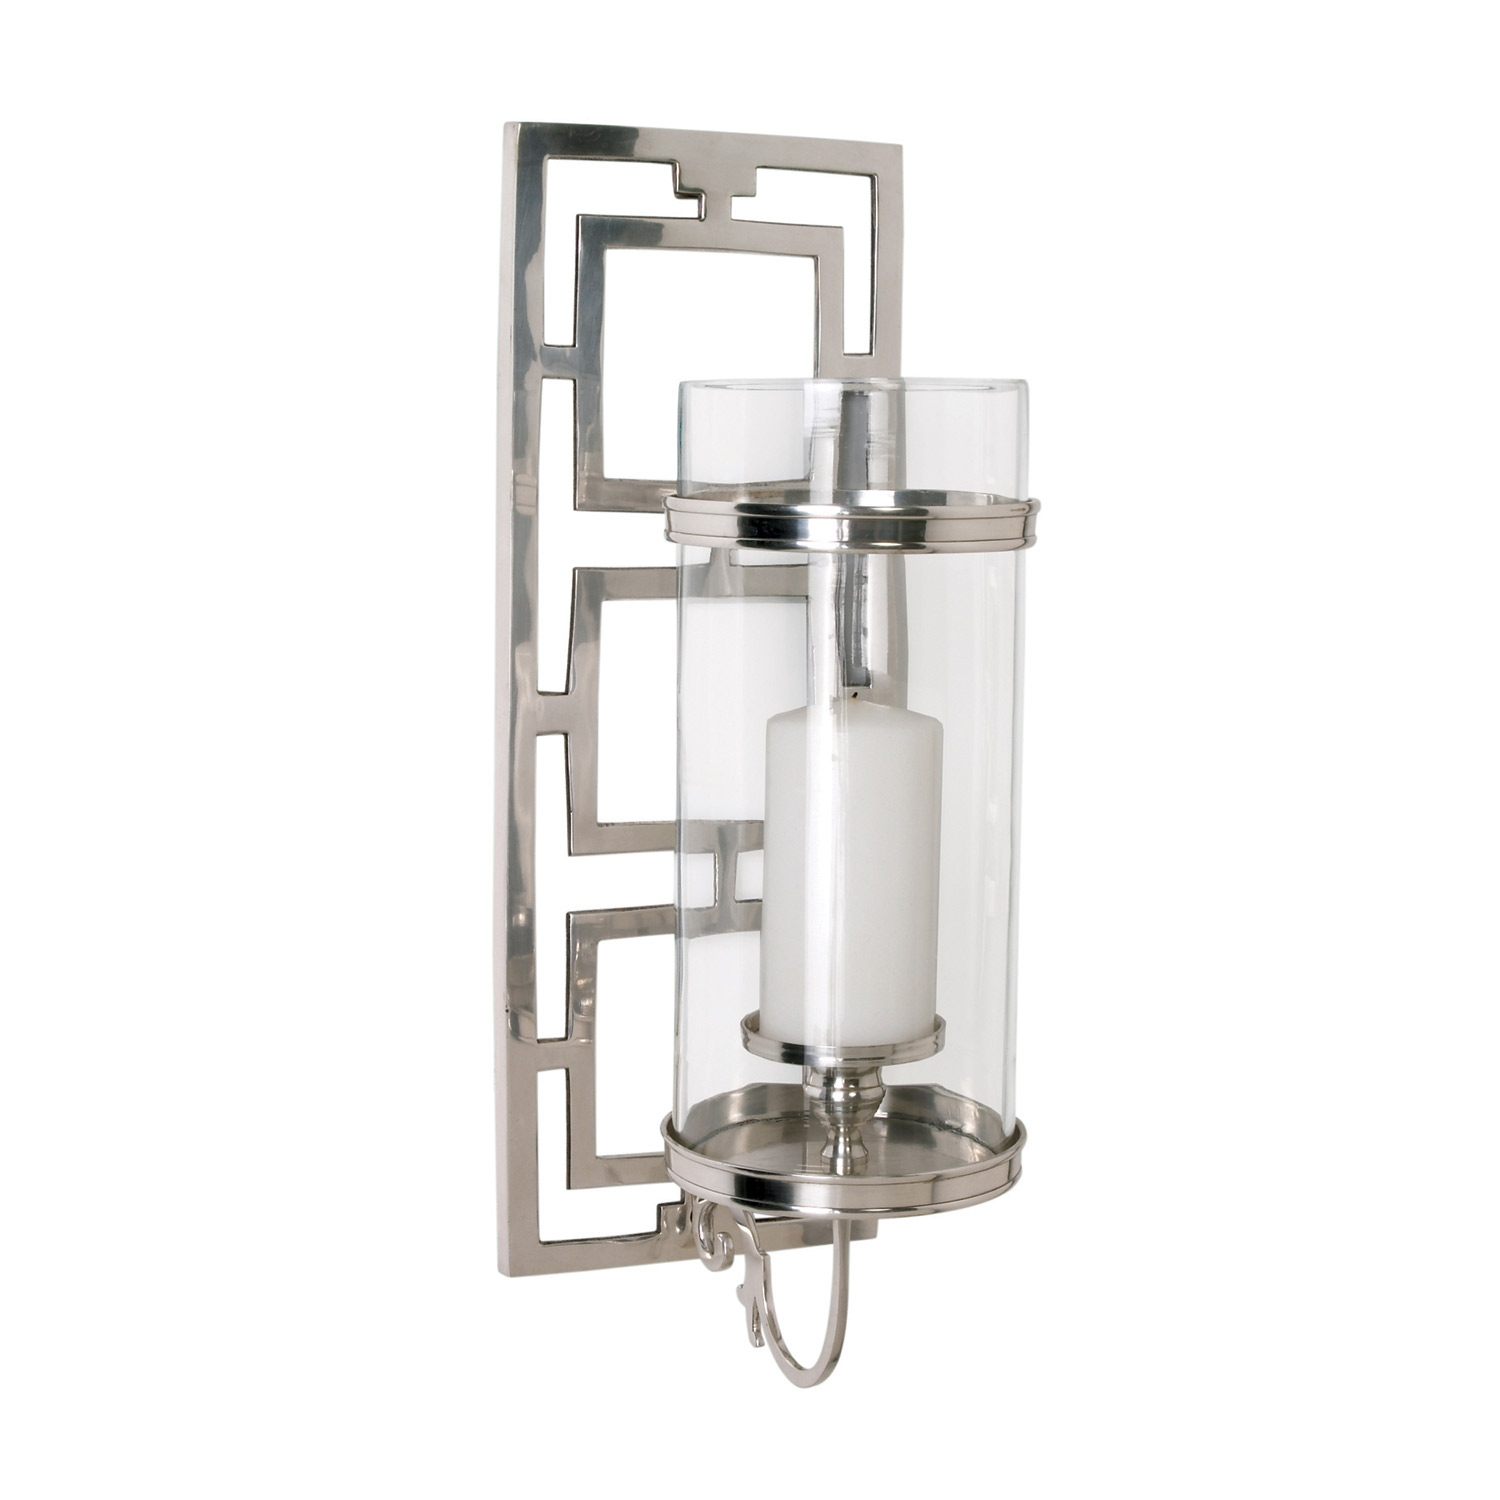 Mirrored Candle Wall Sconces